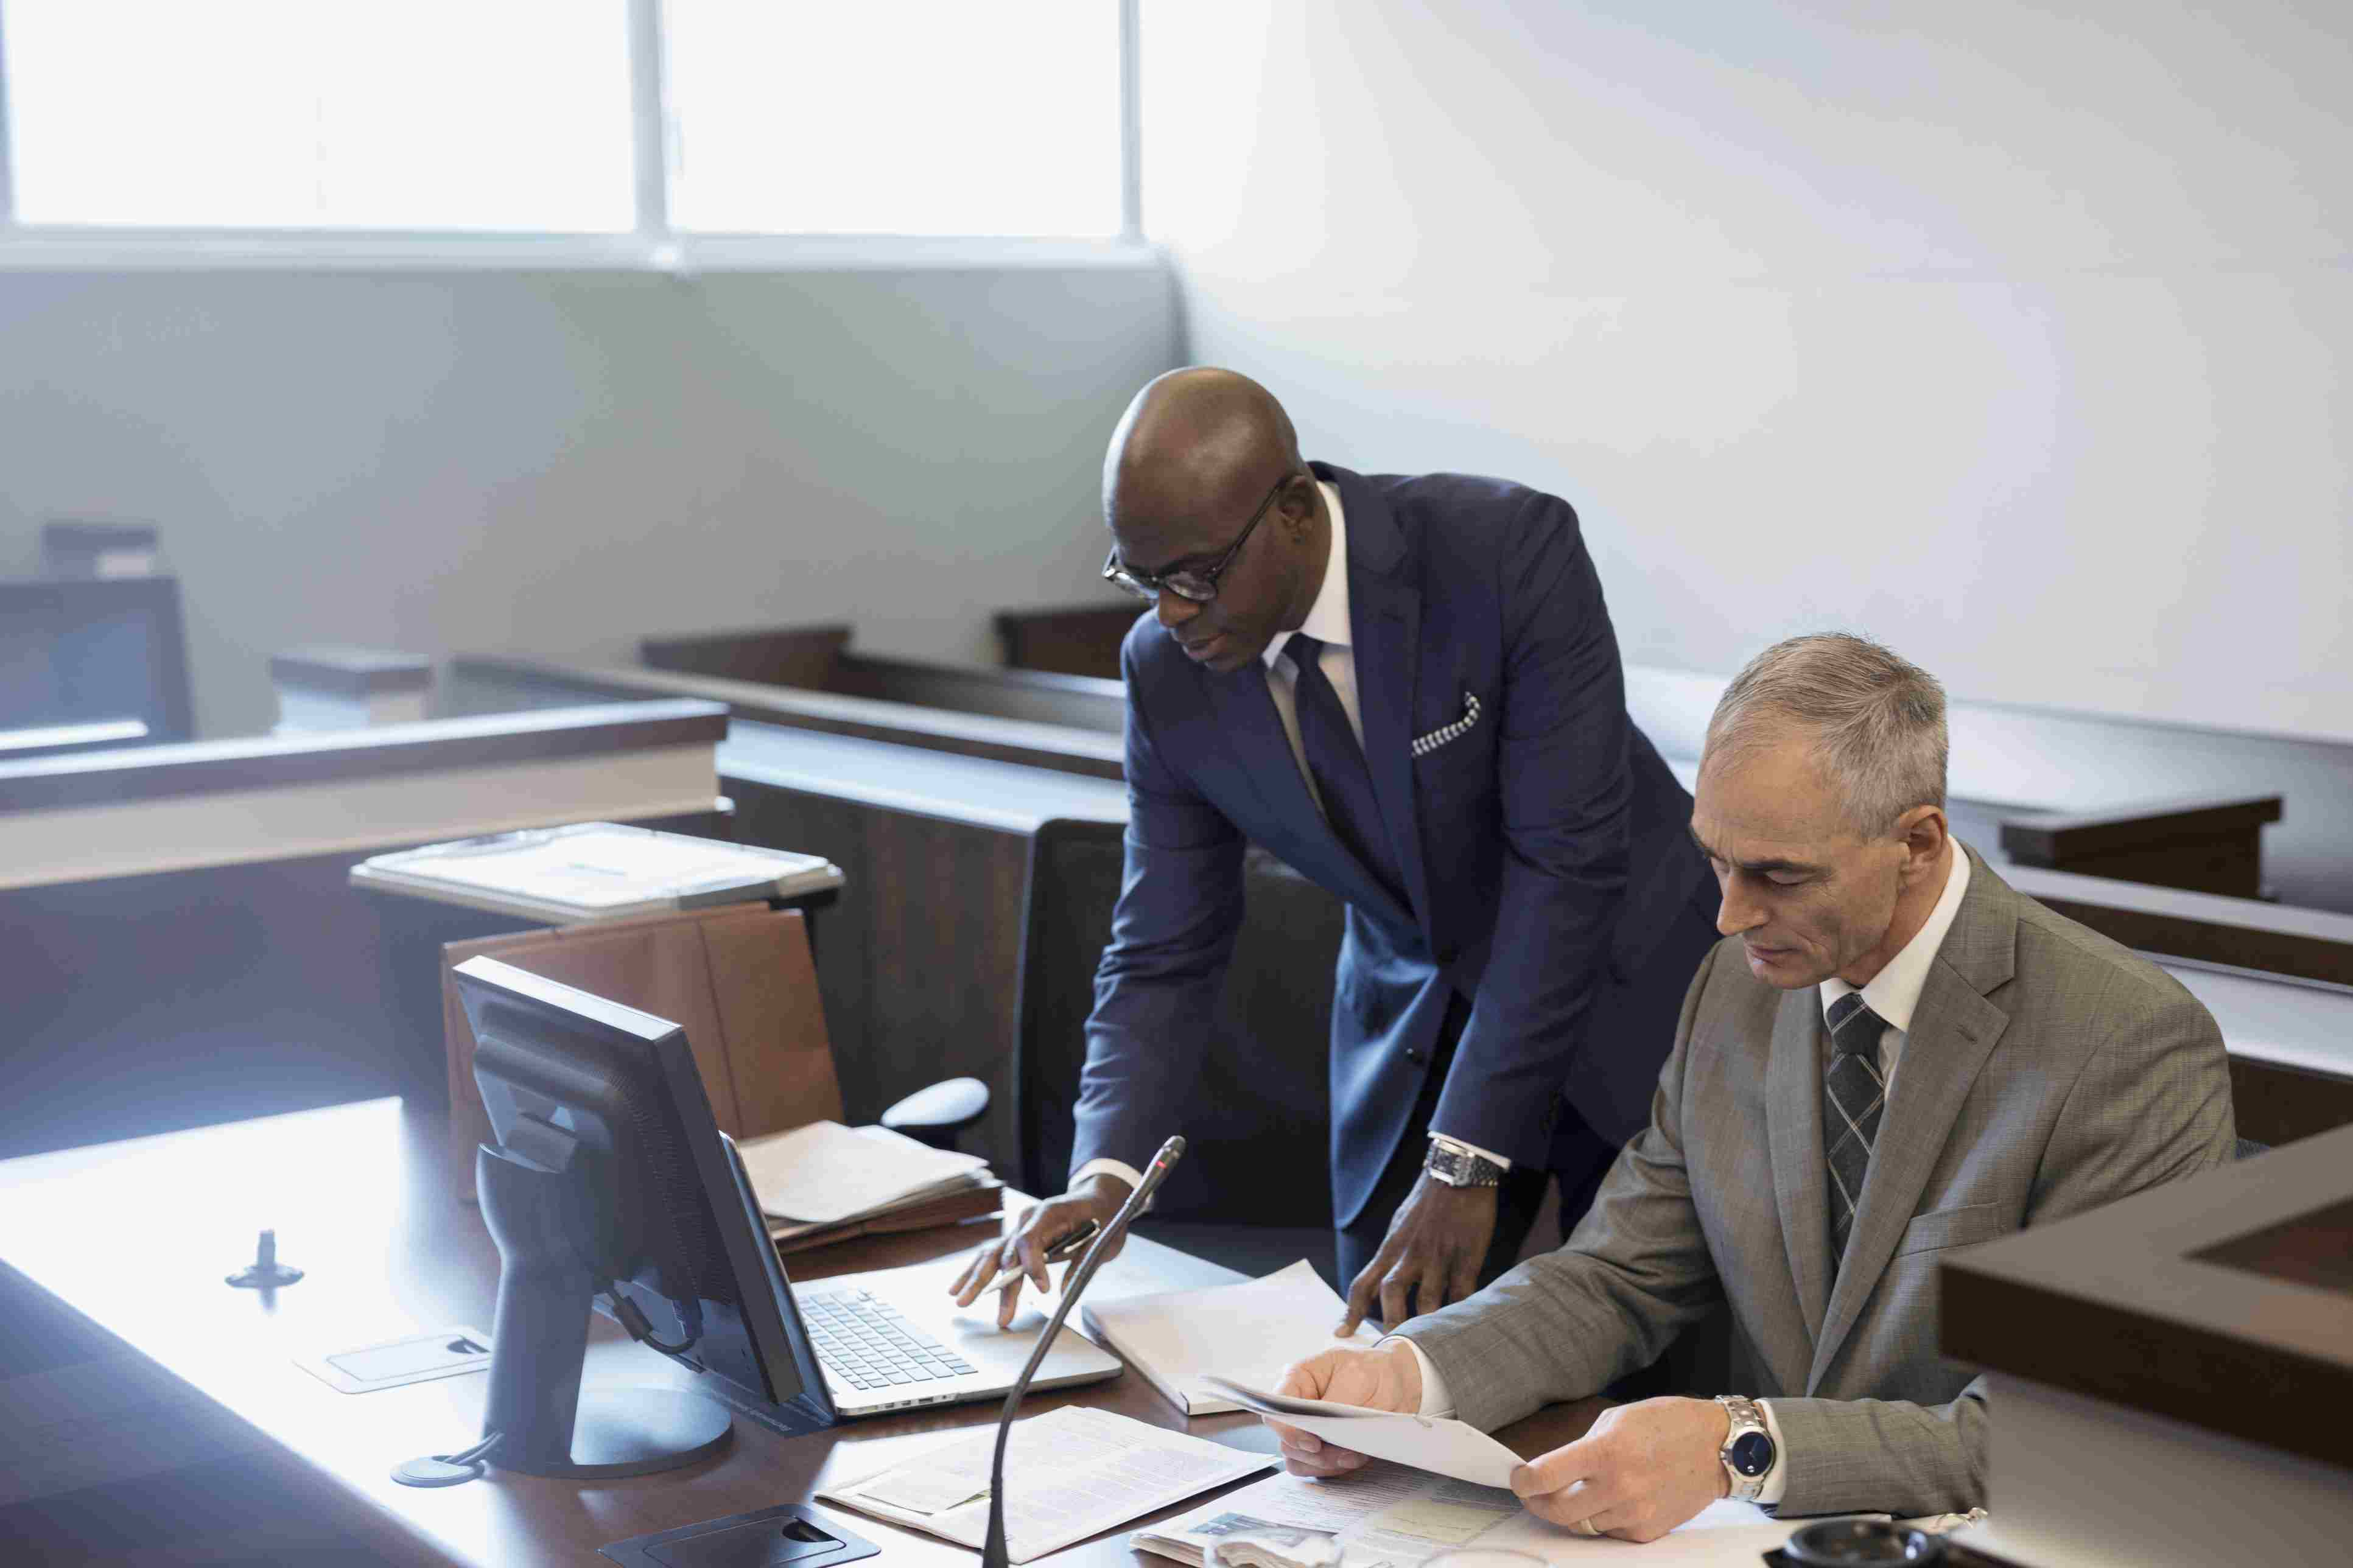 Male prosecutor attorneys working in courtroom